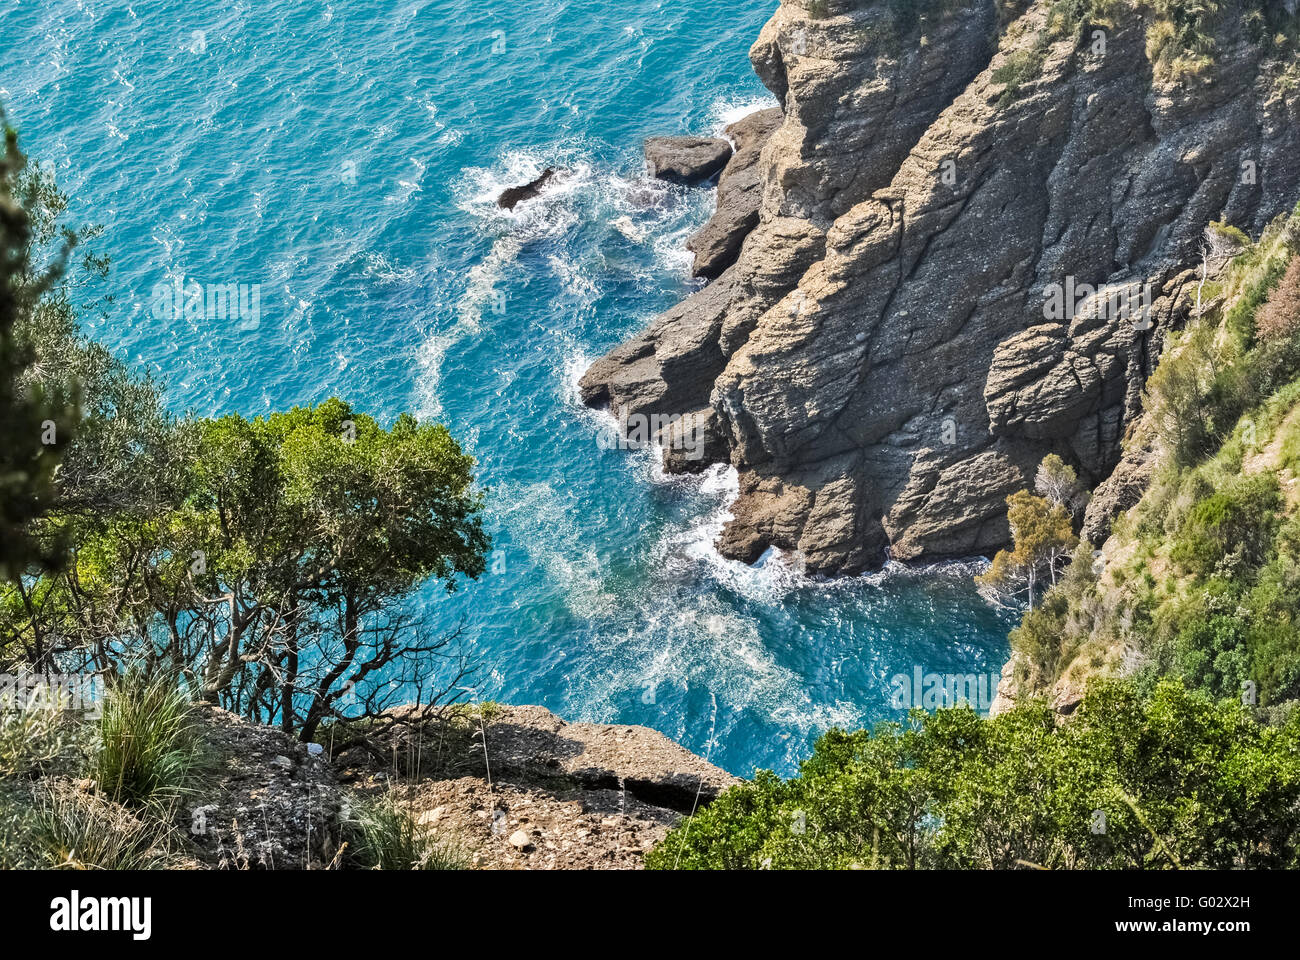 Cliffs in the promontory of Portofino seen from above - Stock Image